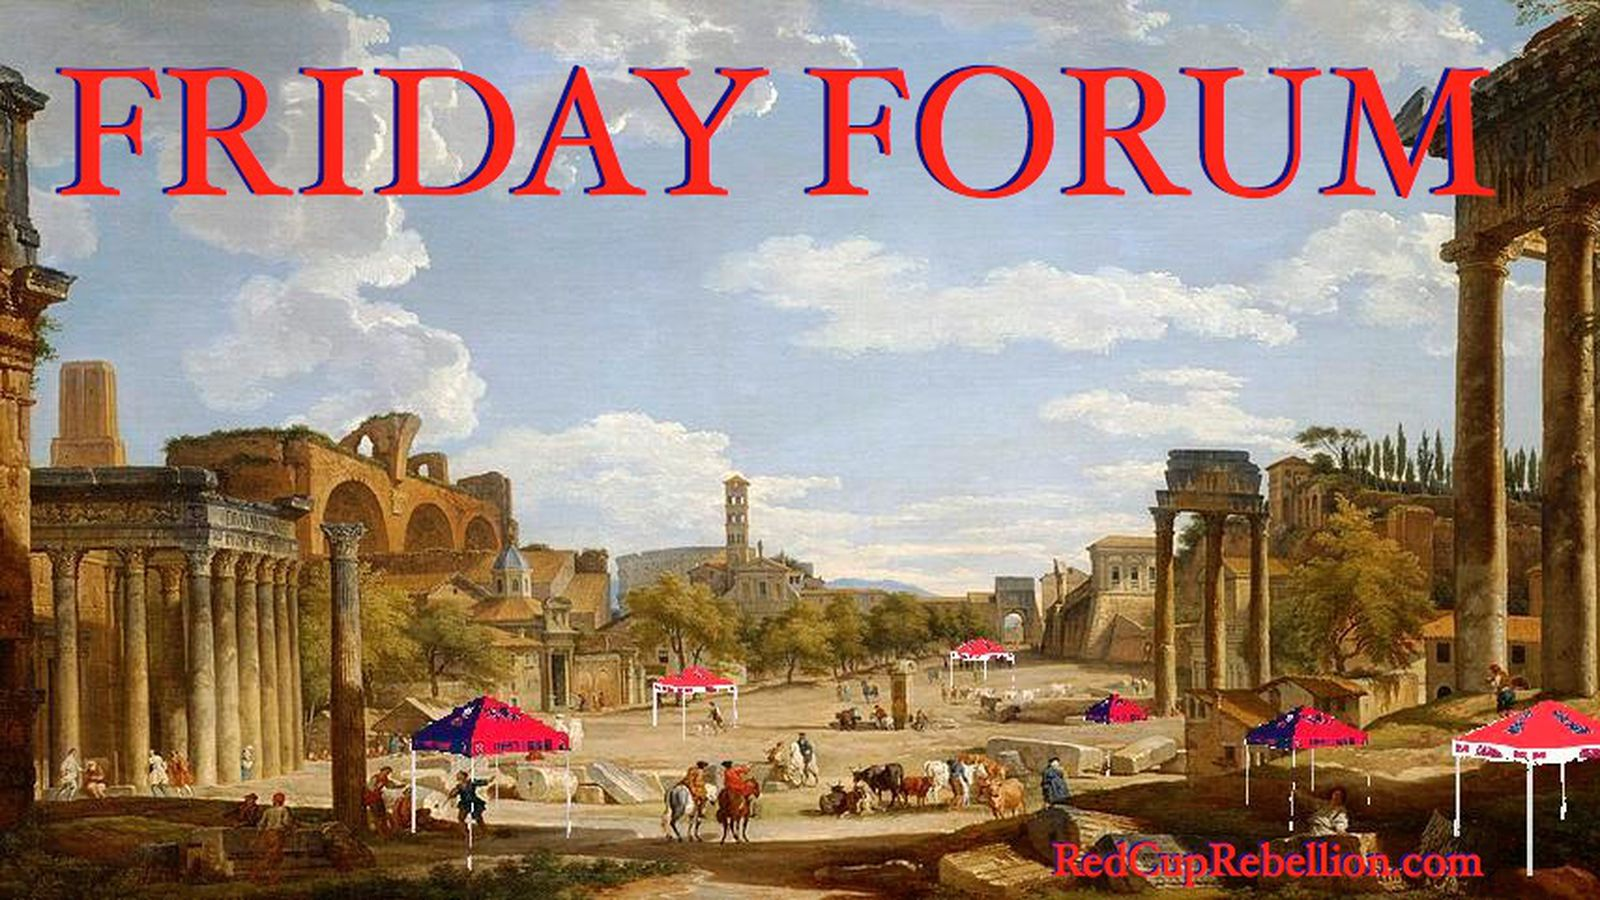 Fridayforum.0